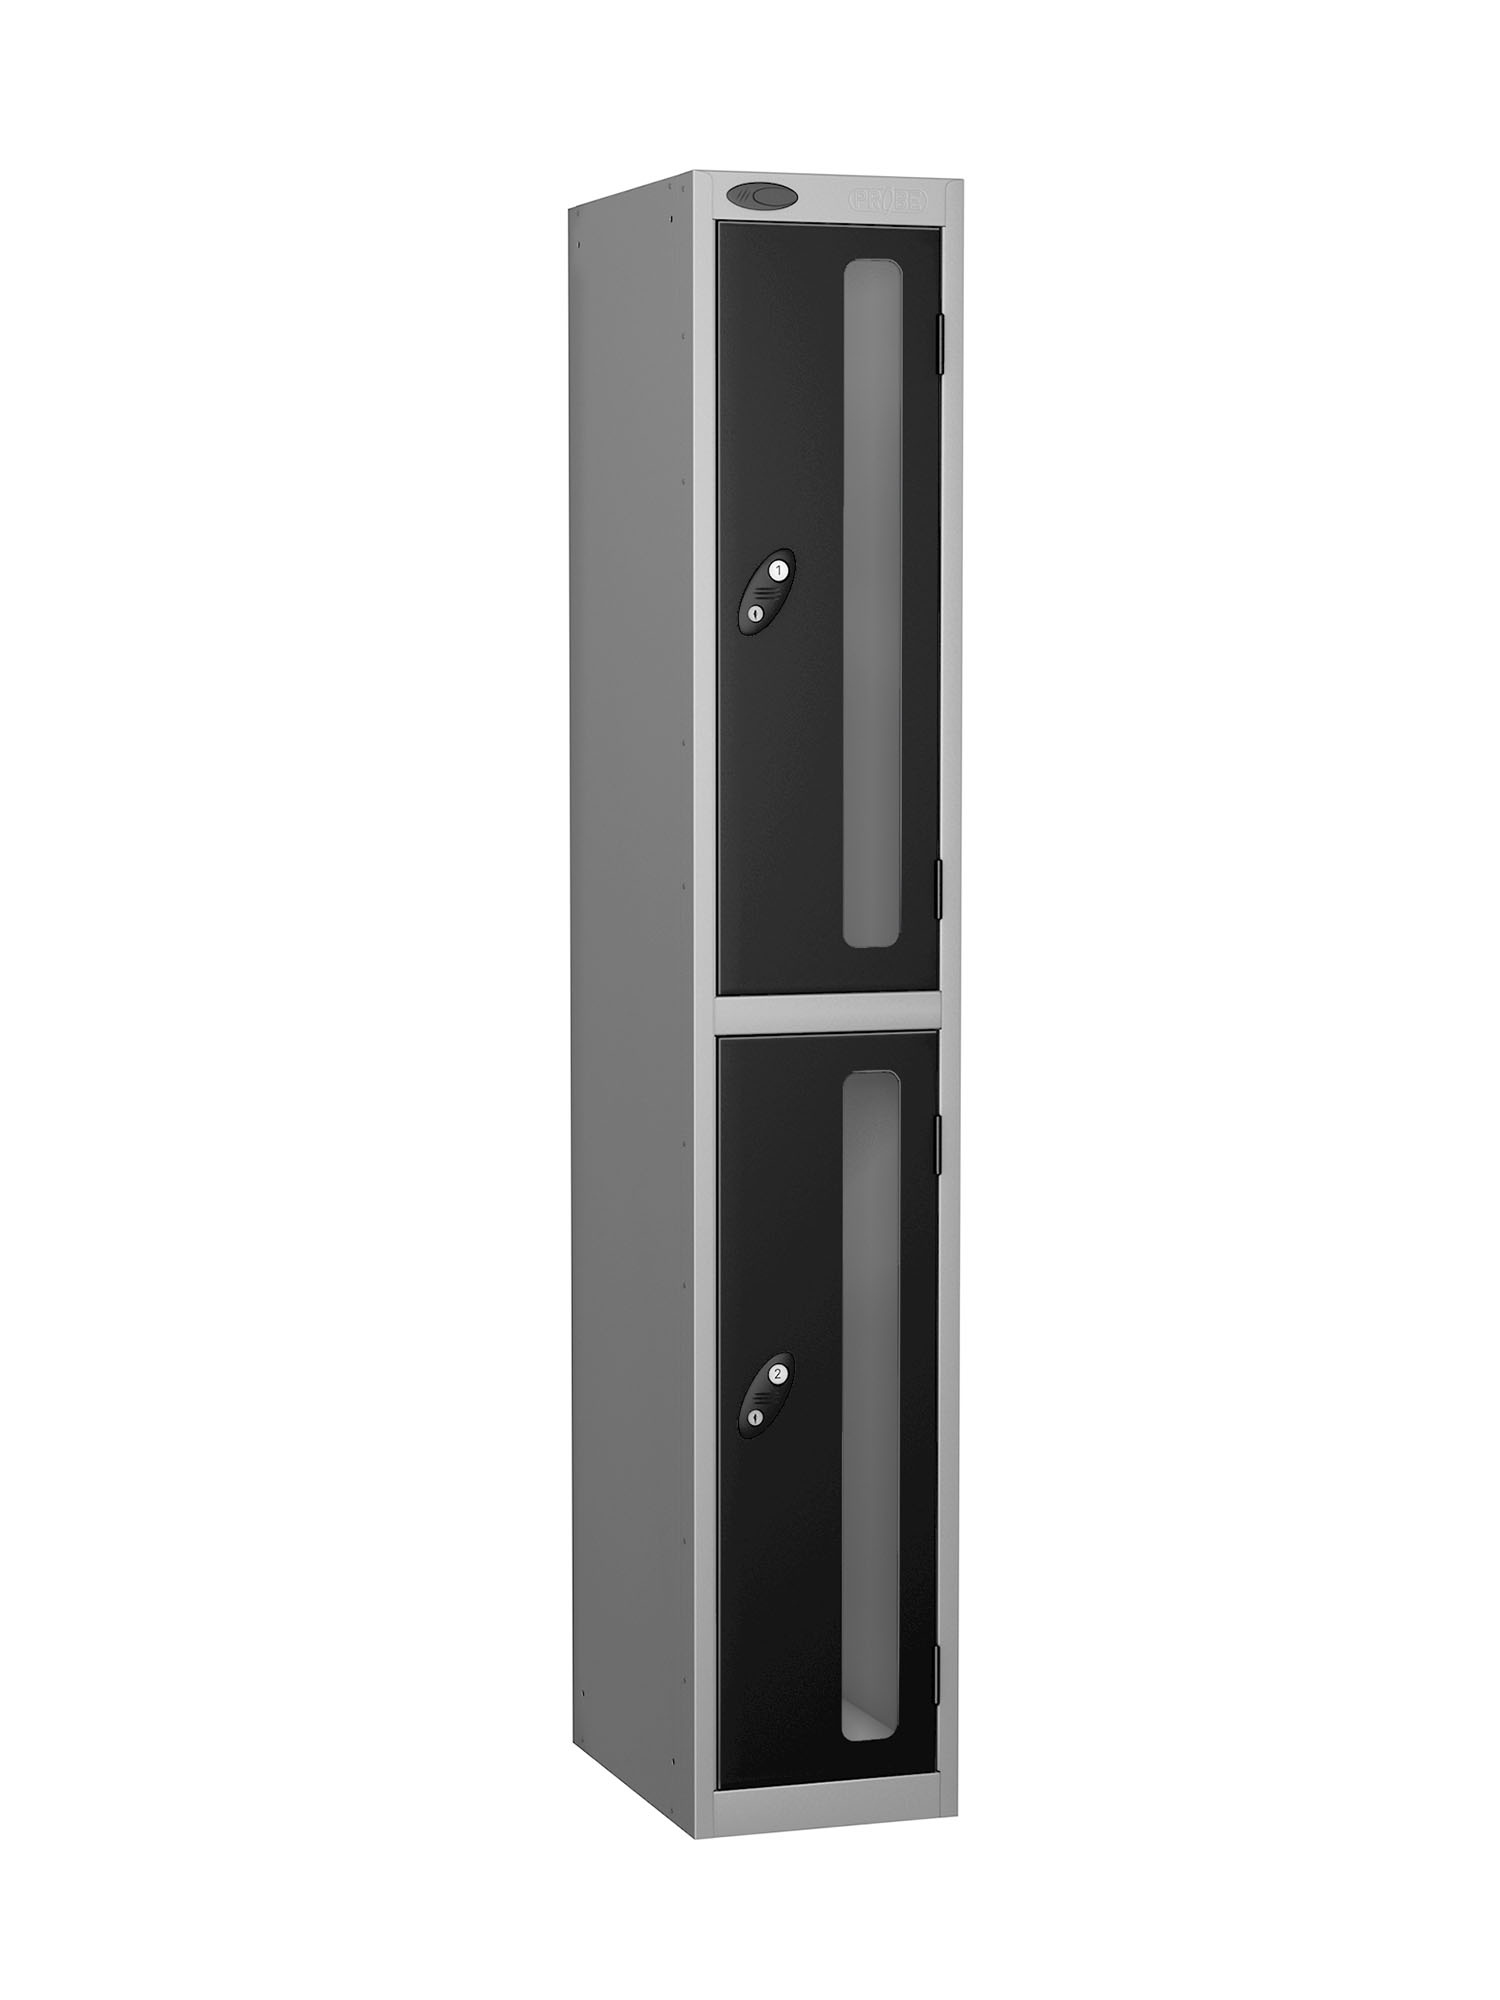 Probe 2 doors vision panel anti-stock theft locker black